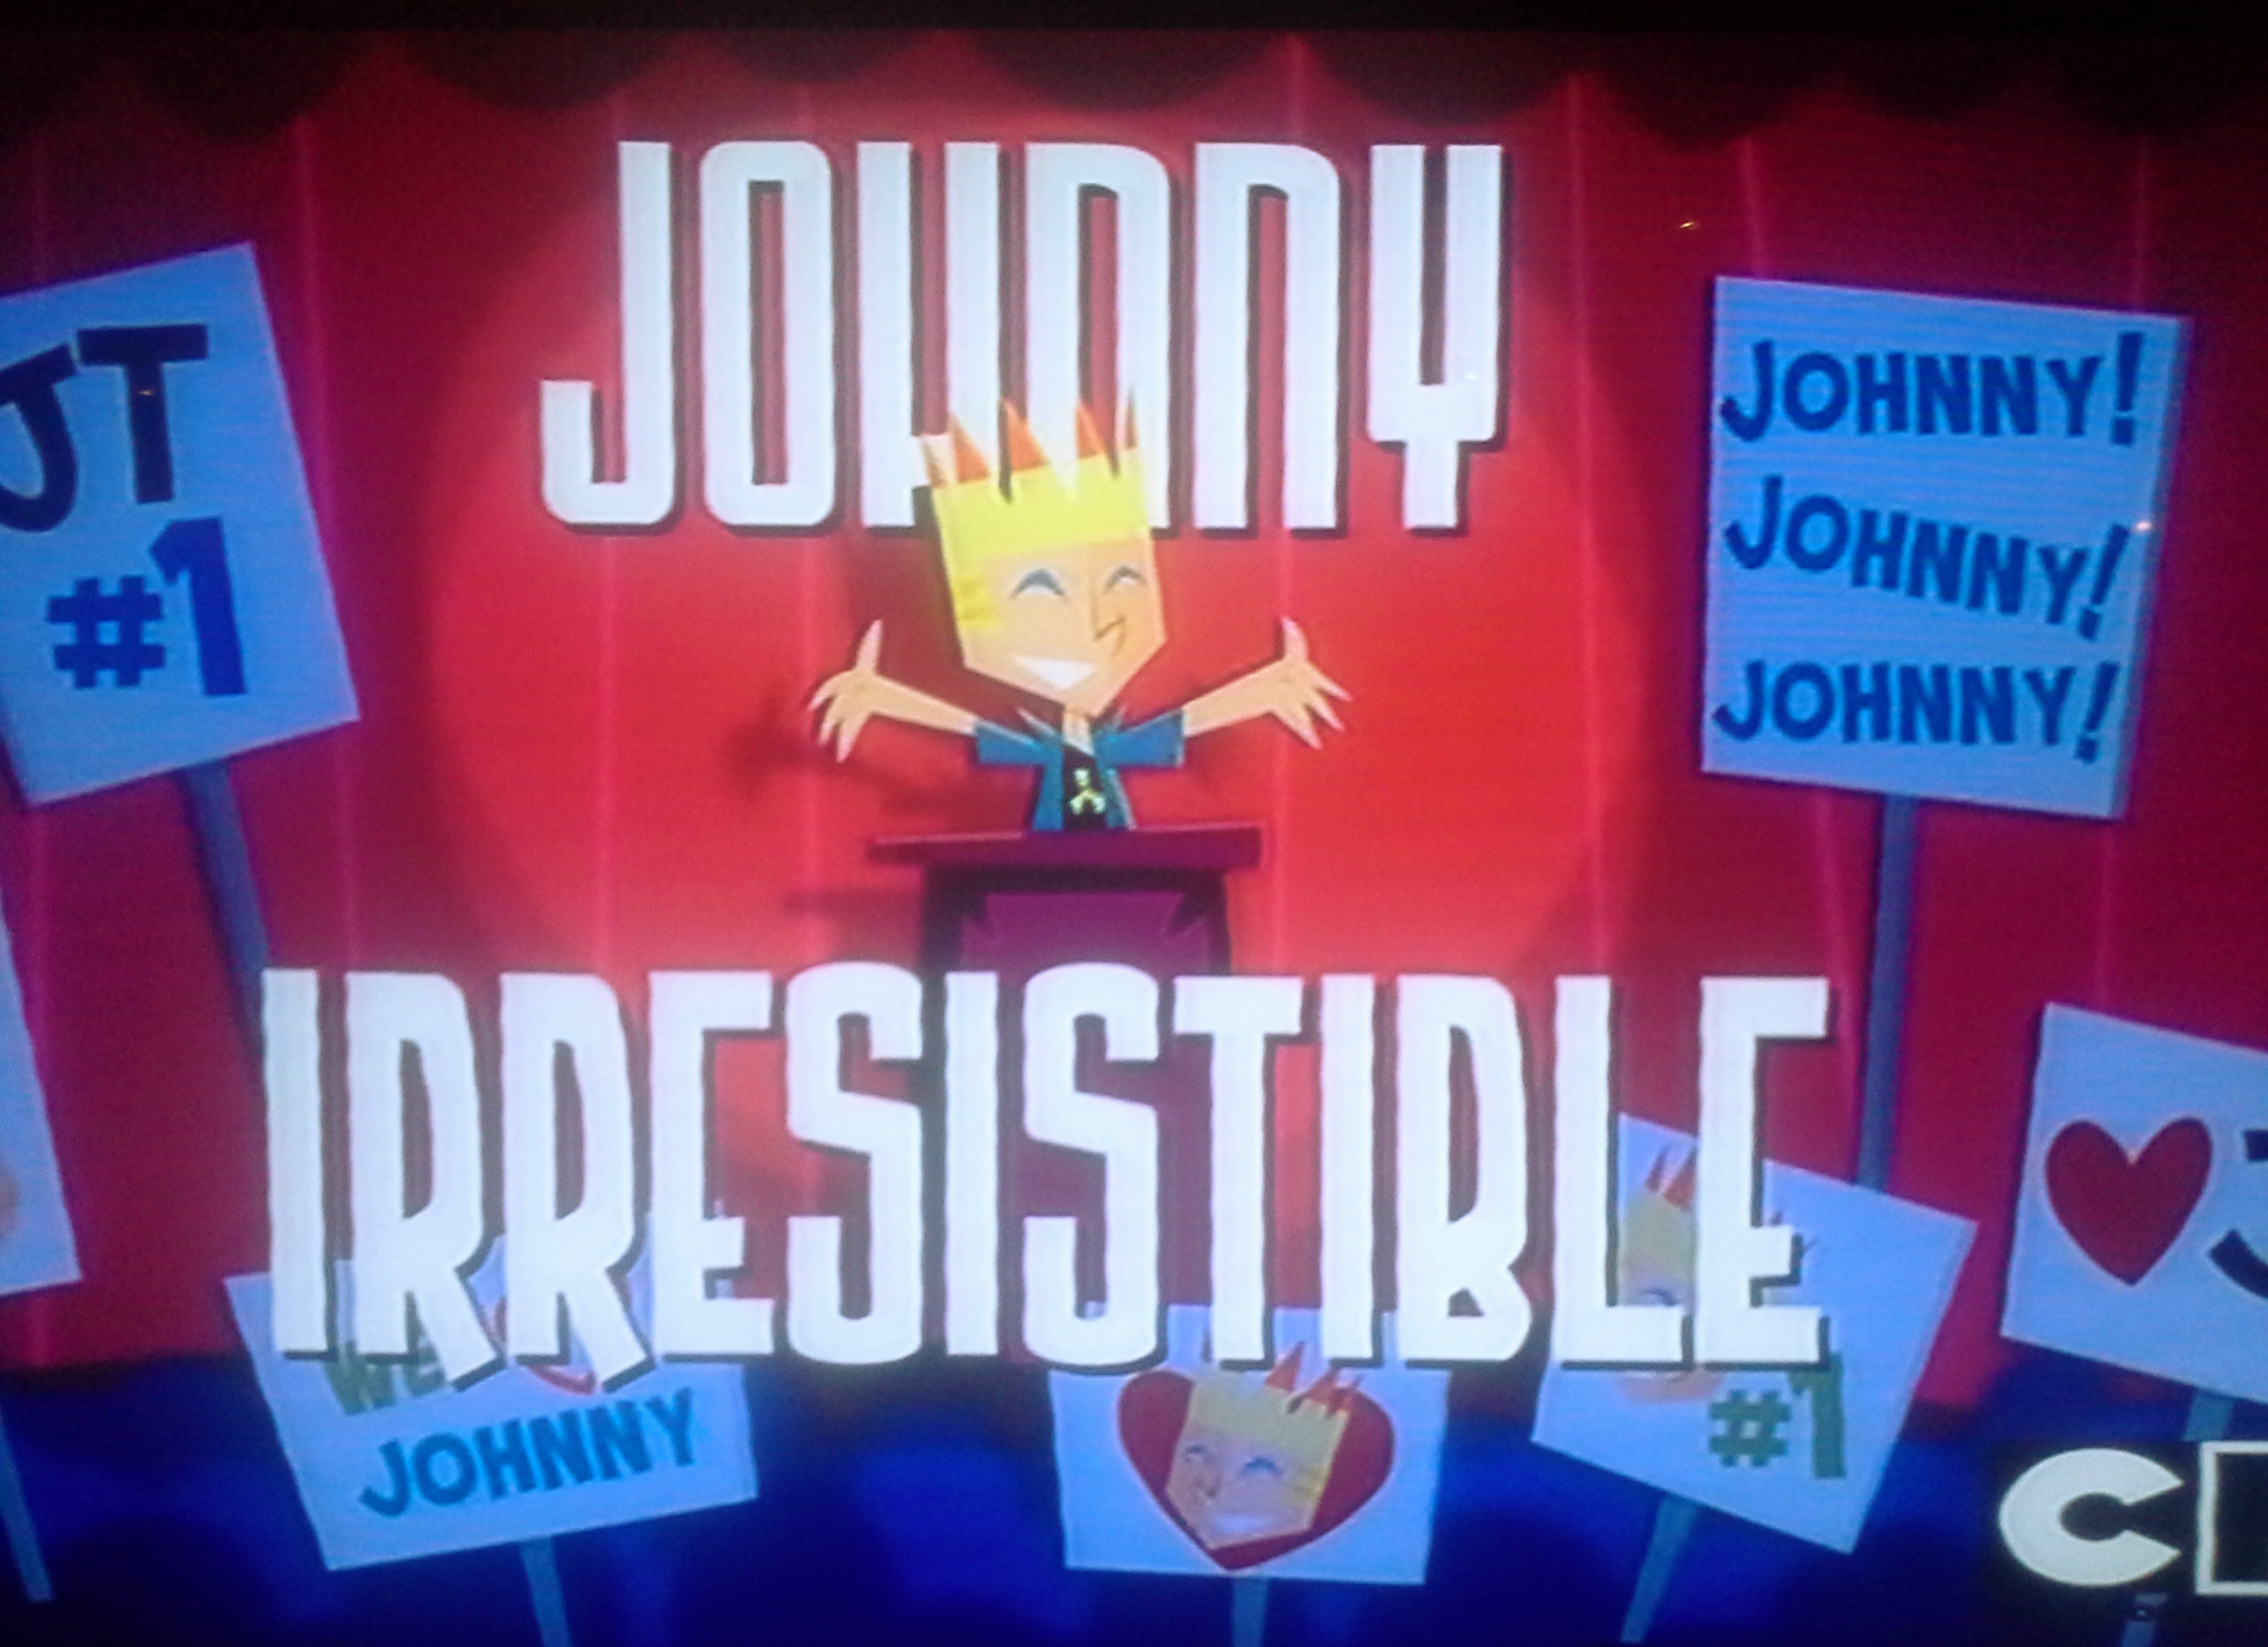 Johnny Irresistible